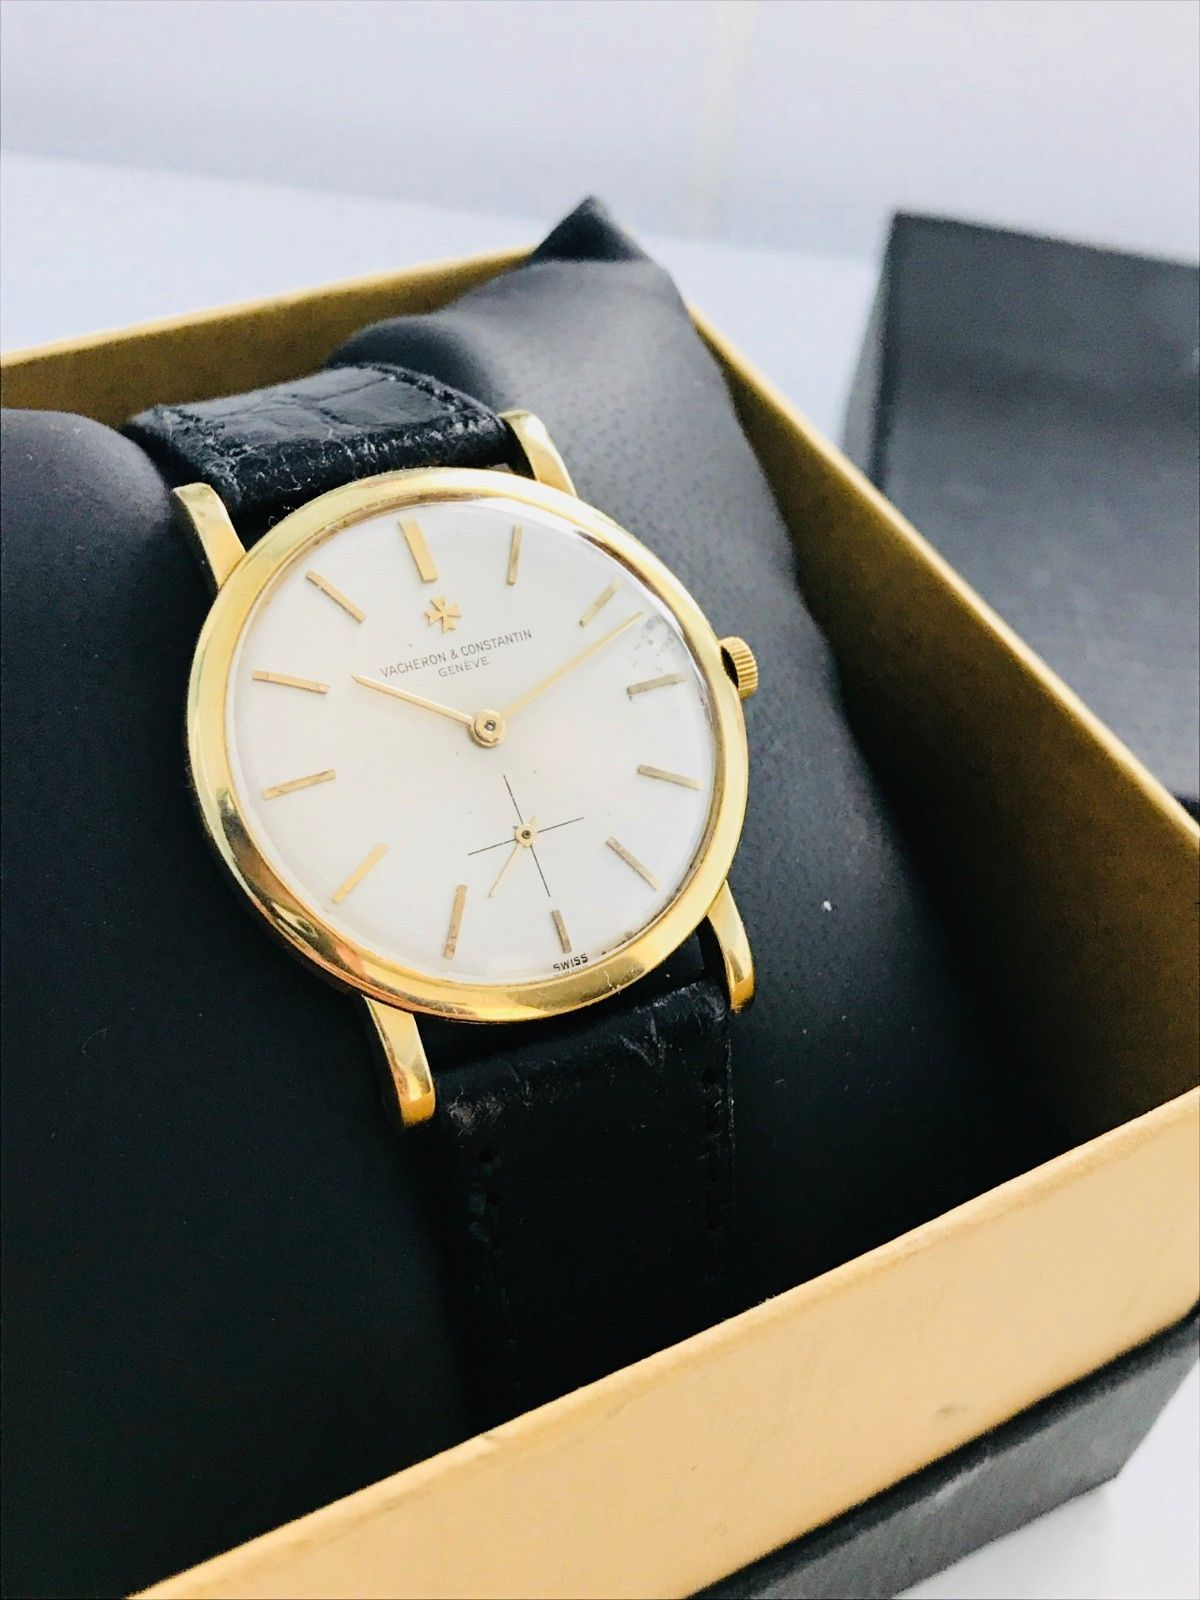 Vacheron Constantin Patrimony Watch Solid 18k Ultra Thin Cal 1001 Working Vintage Watches Vacheron Constantin Leather Watch